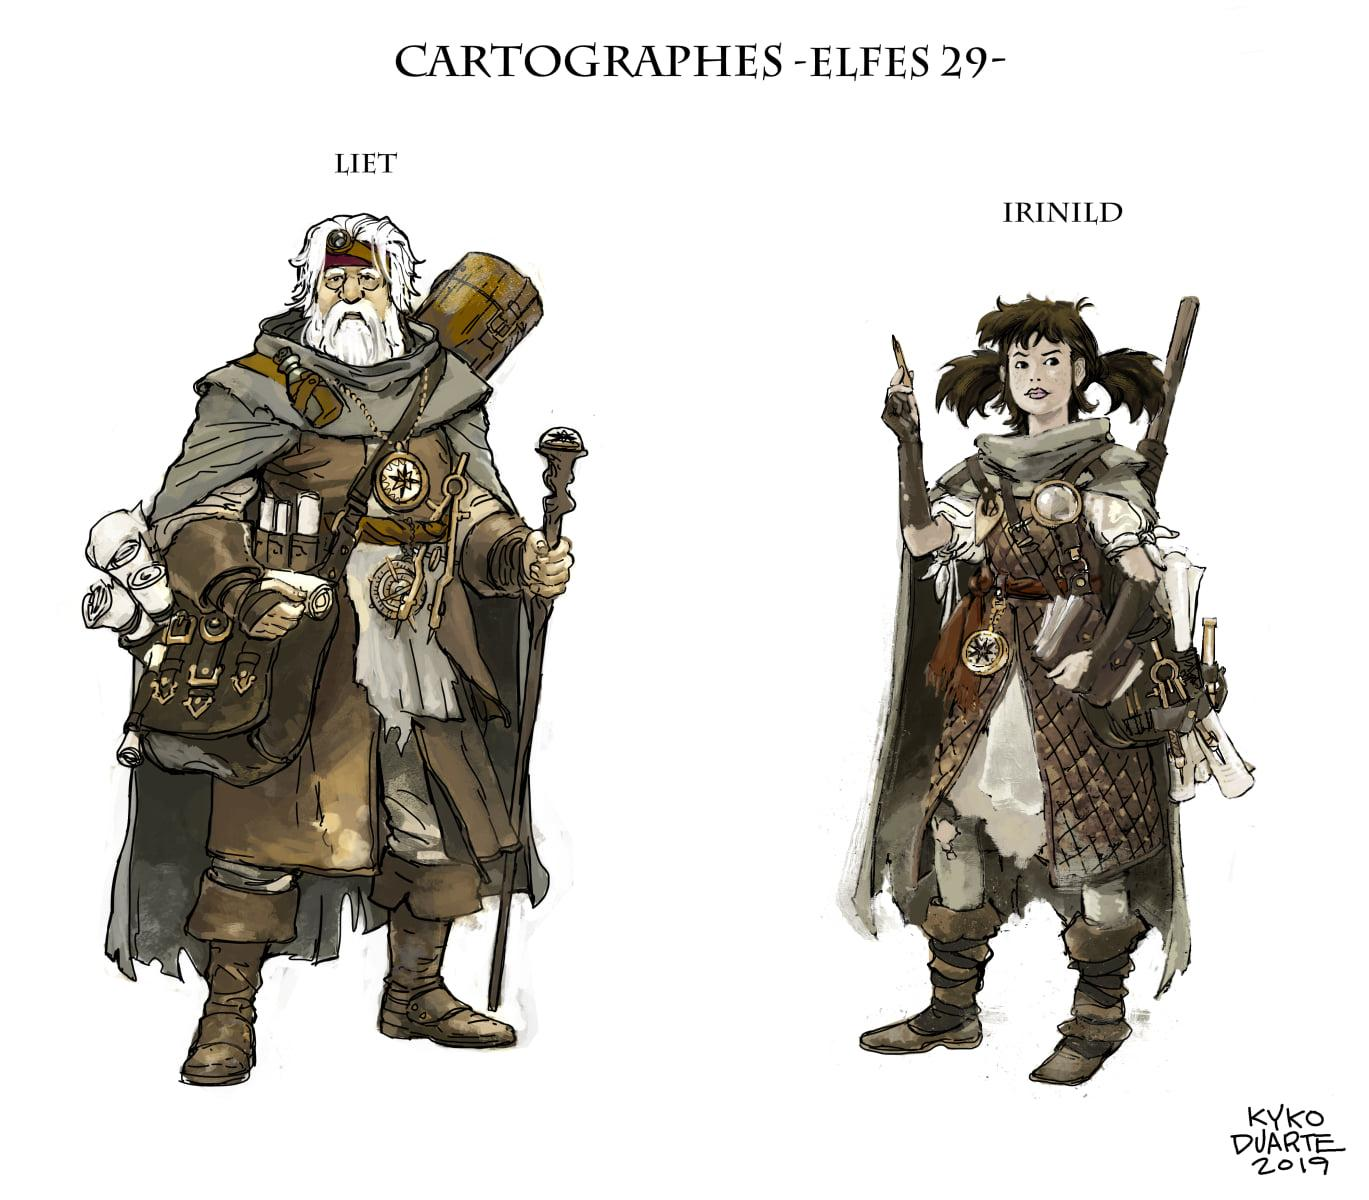 Elfes 29 personnages